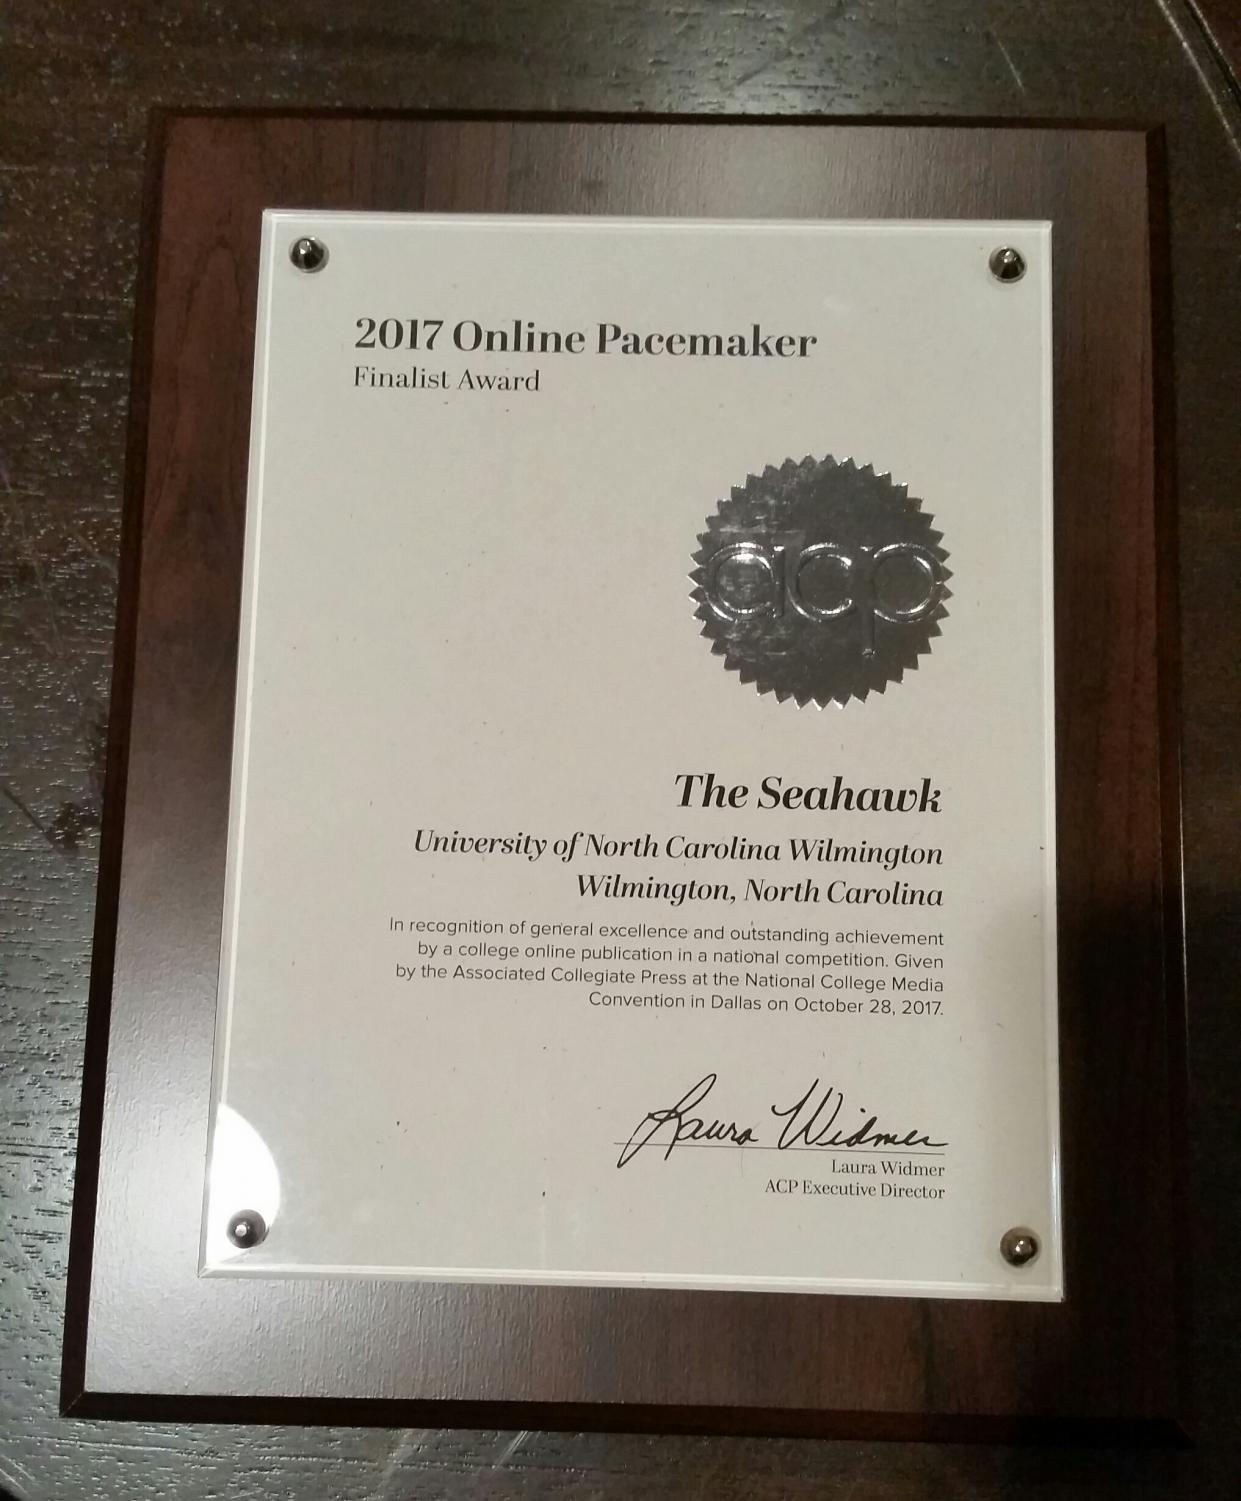 Though The Seahawk did not win a Pacemaker, they were awarded a finalist's plaque for their hard work and national recognition.